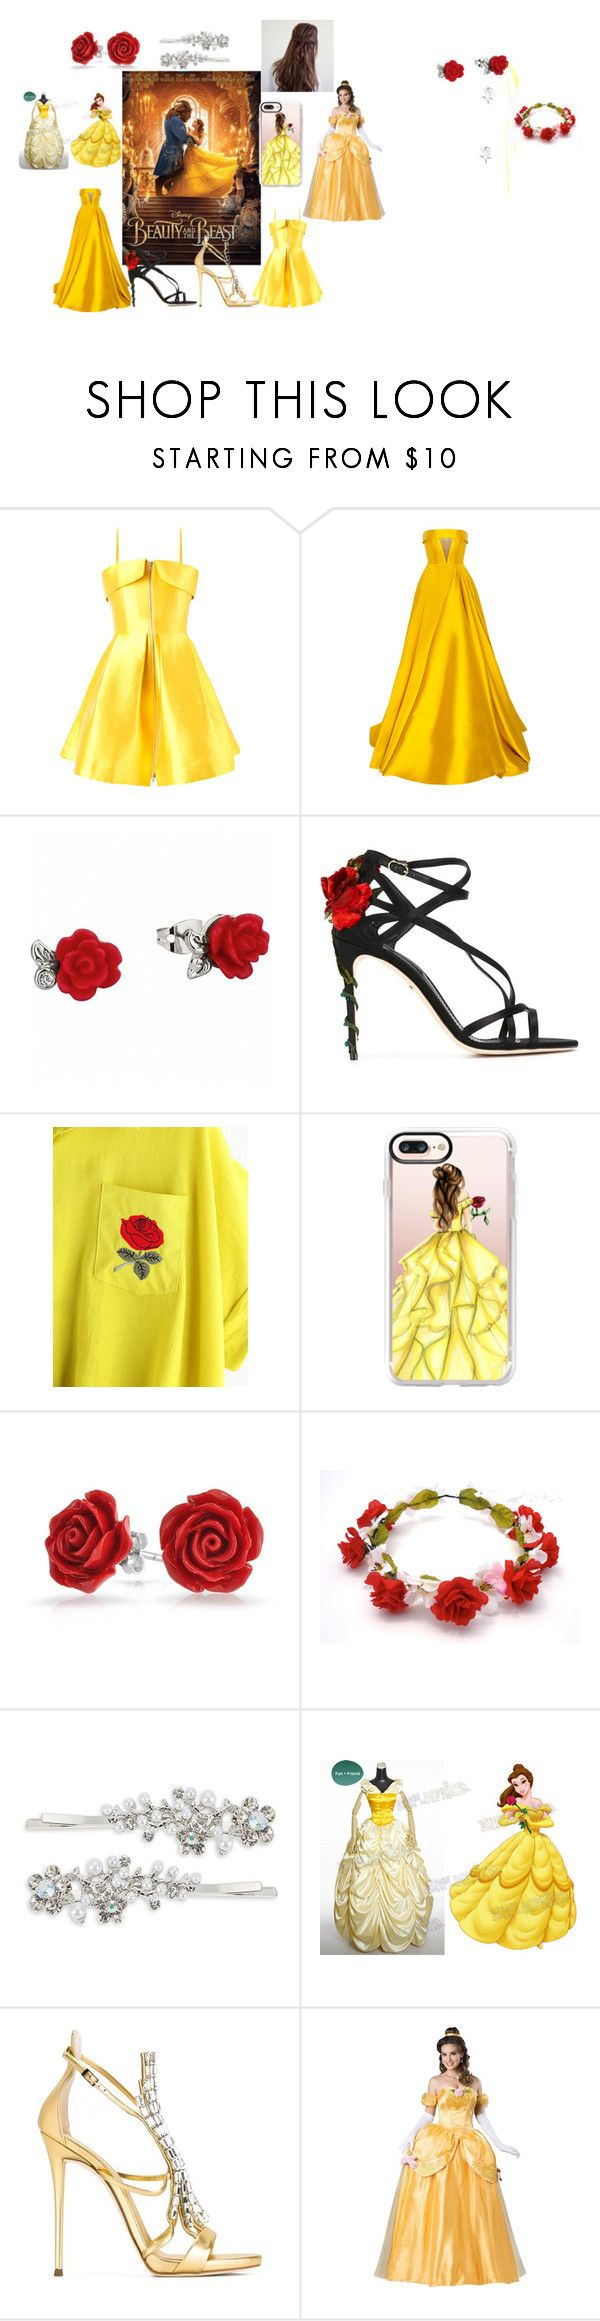 """""""Yellow<3"""" by krissybrennan ❤ liked on Polyvore featuring Disney, Alex Perry, Dolce&Gabbana, Casetify, Bling Jewelry, Robert Rose, Giuseppe Zanotti, BeautyandtheBeast and contestentry"""